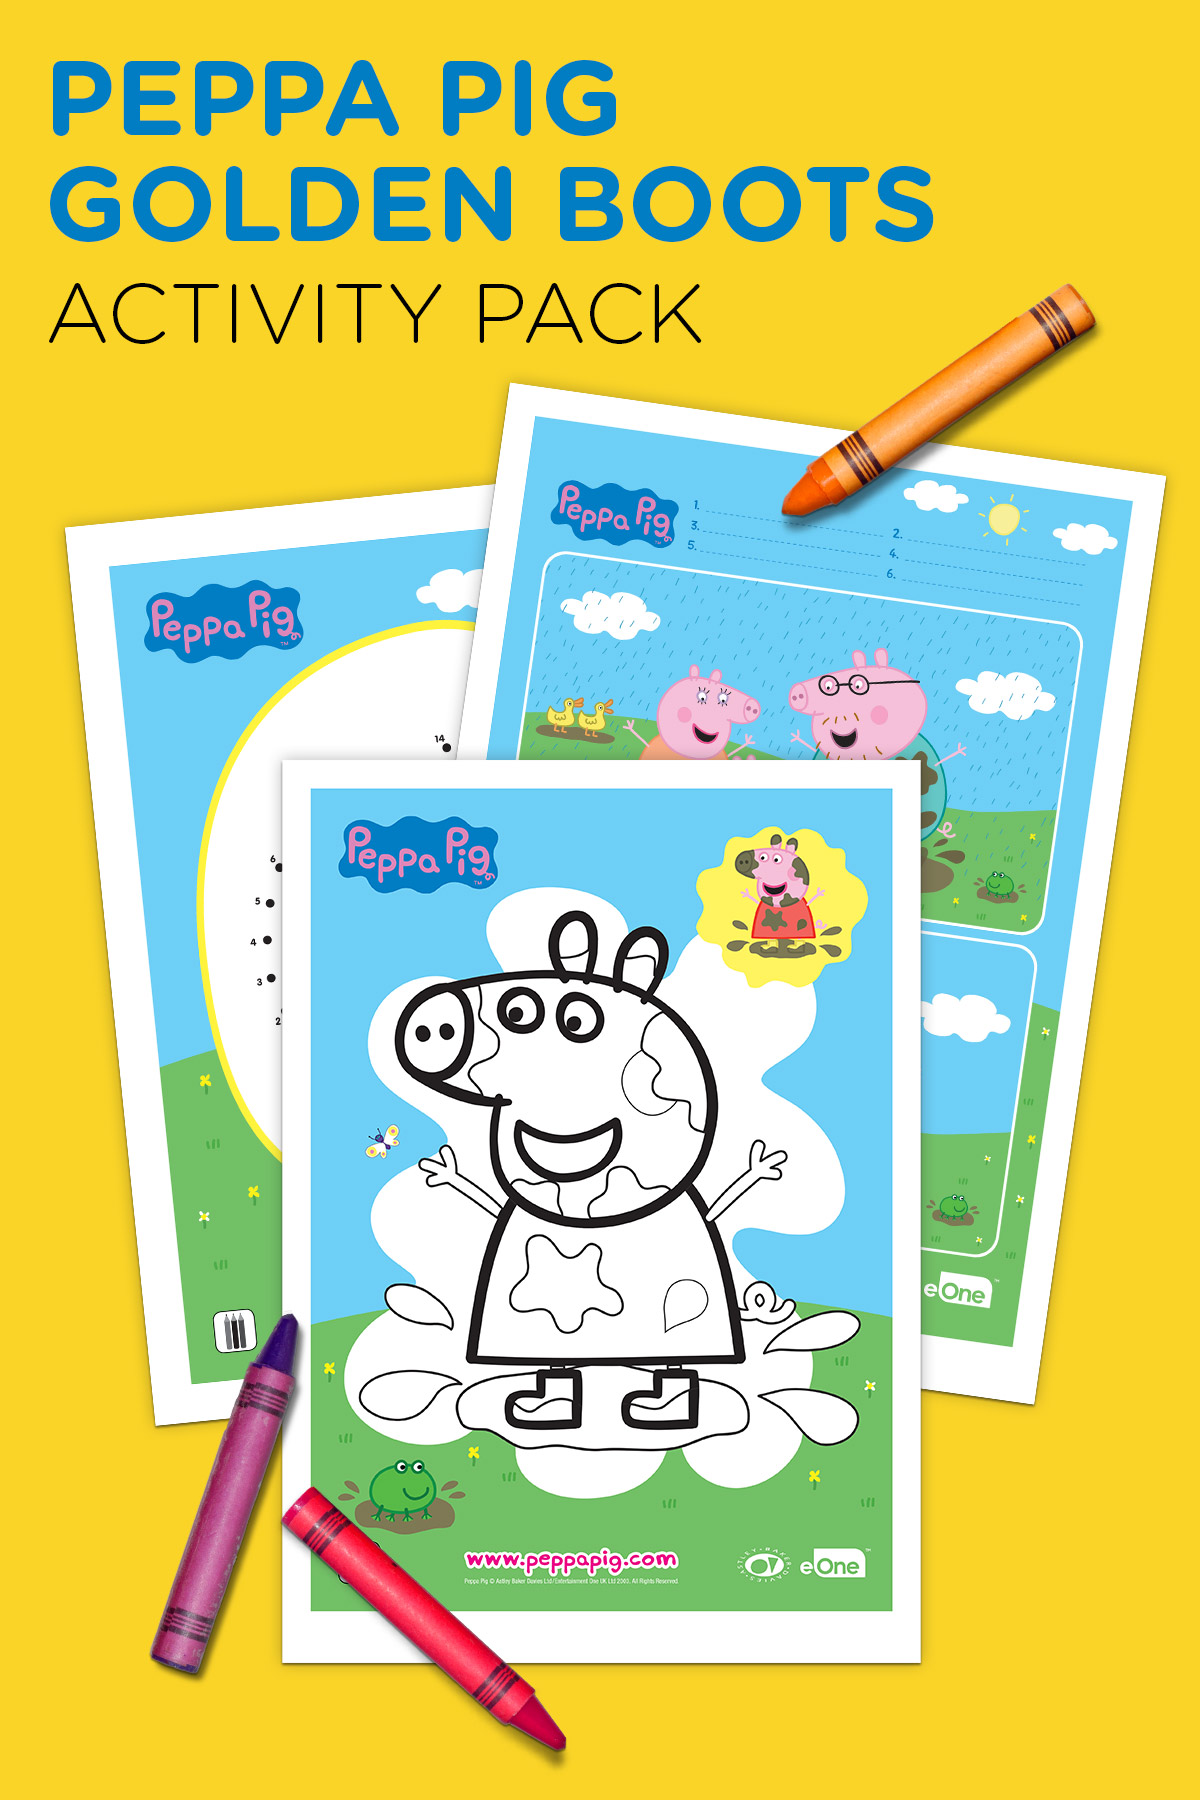 Peppa Pig Golden Boots Activity Pack